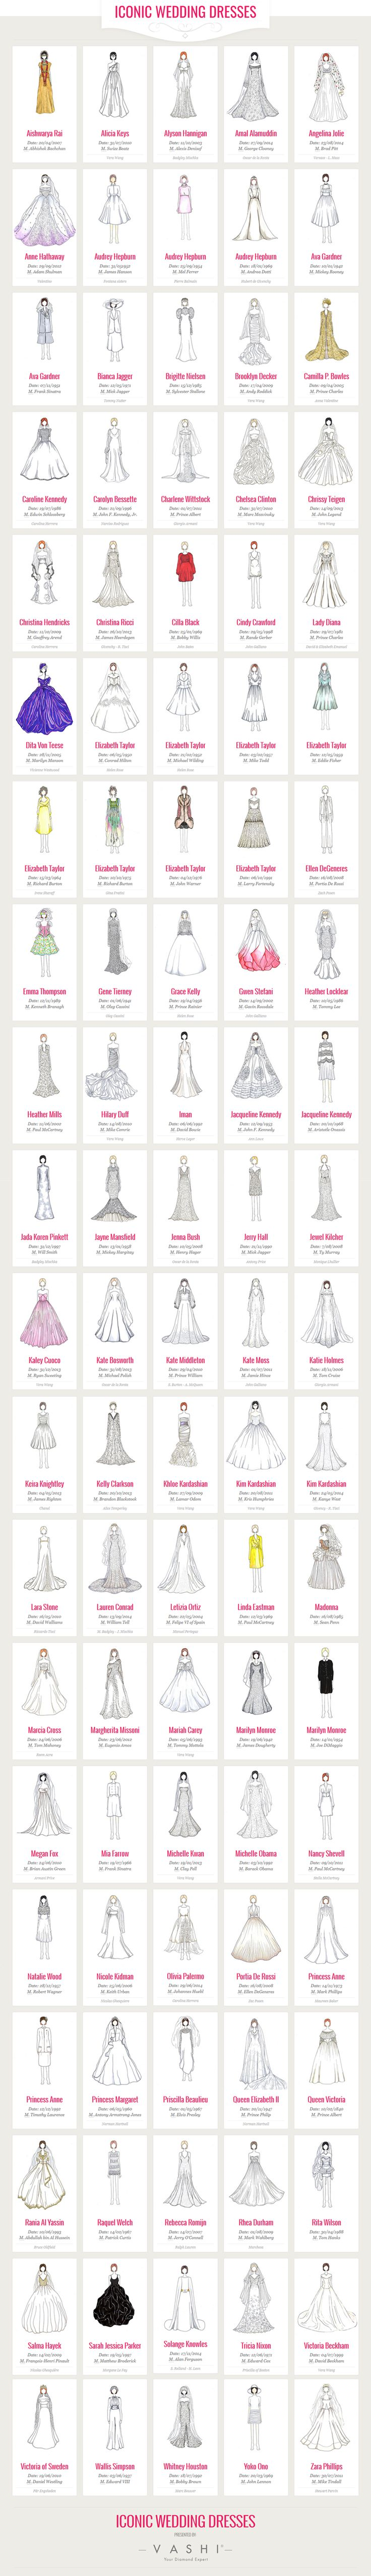 These are the 100 most iconic wedding dresses of all time.